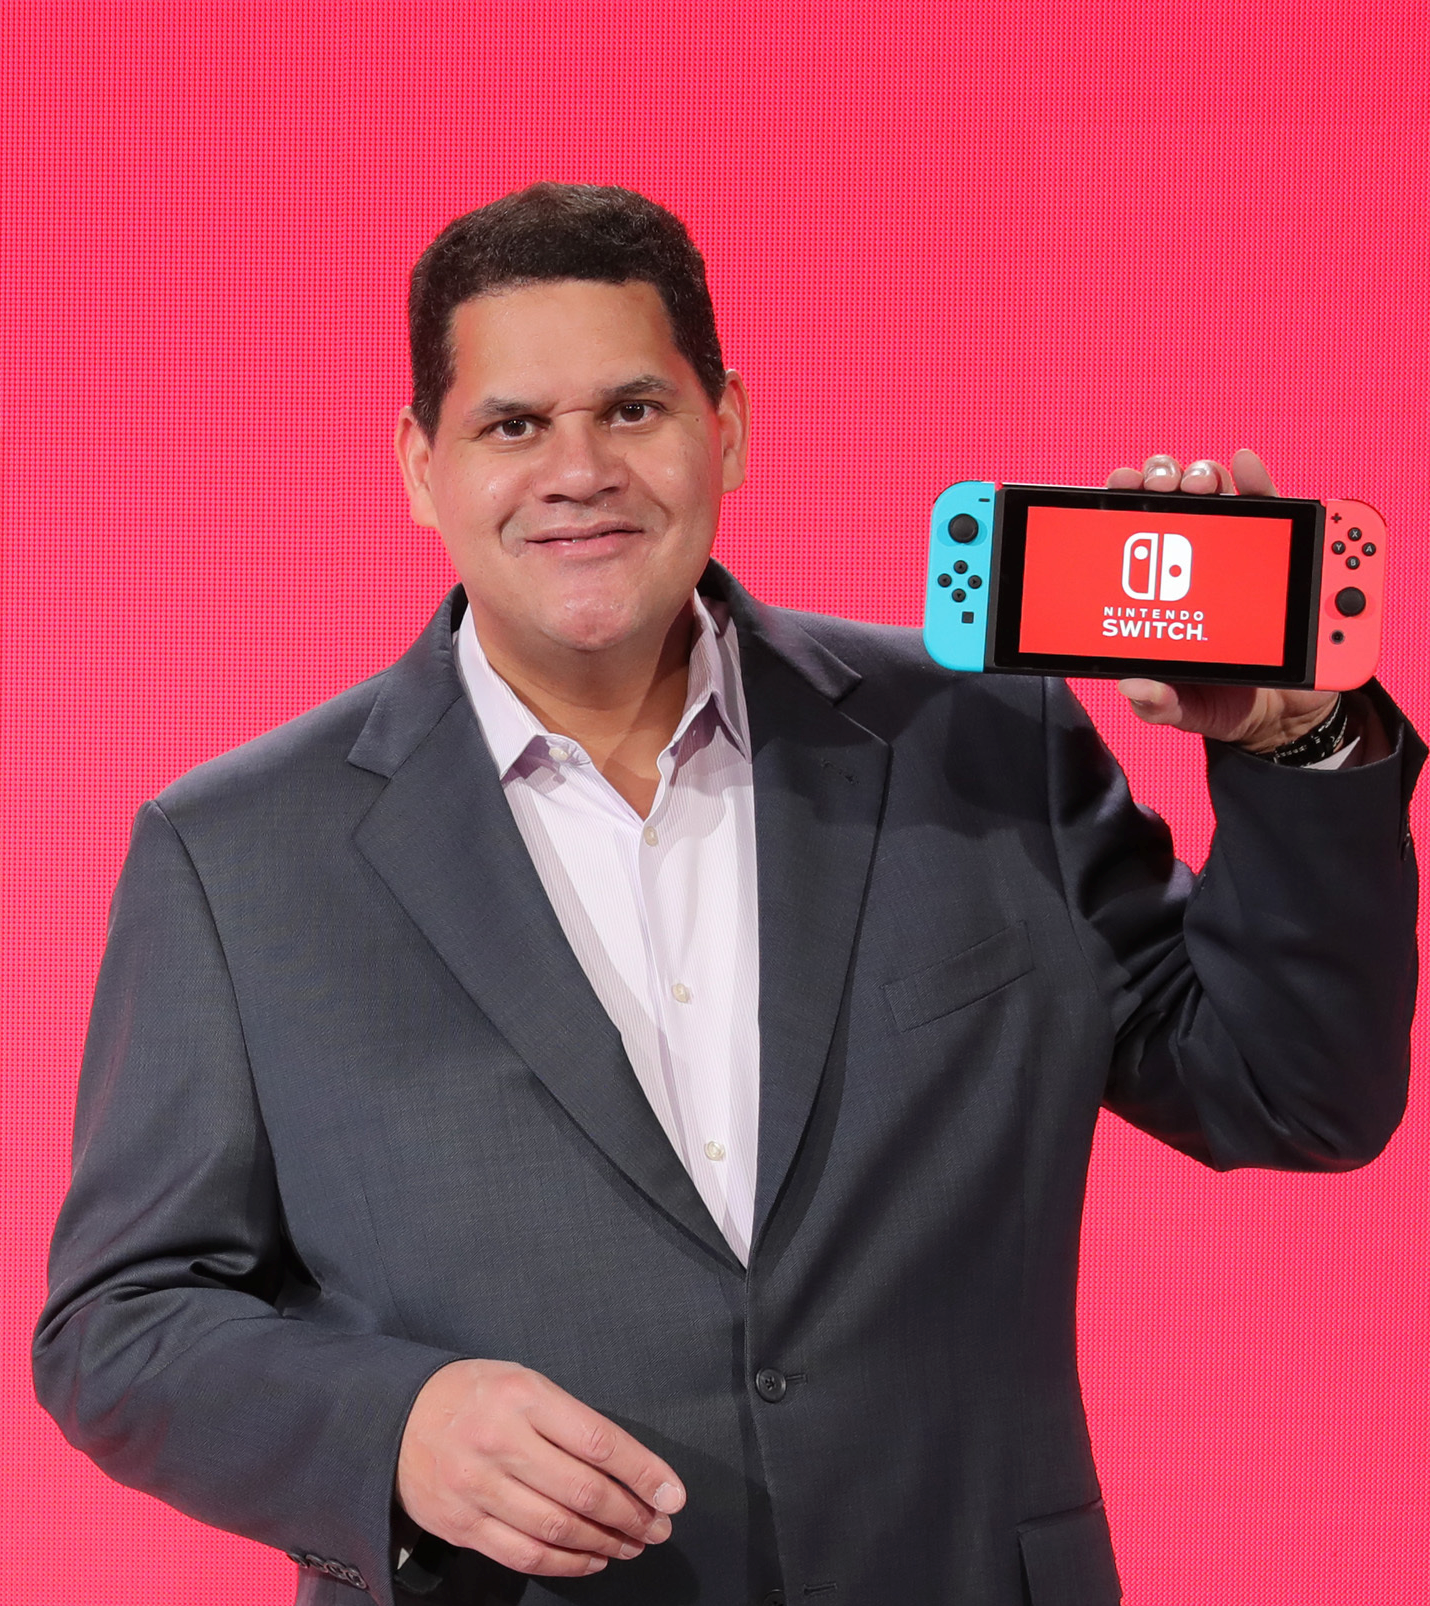 Nintendo Switch in stock at Toys R Us starting tomorrow